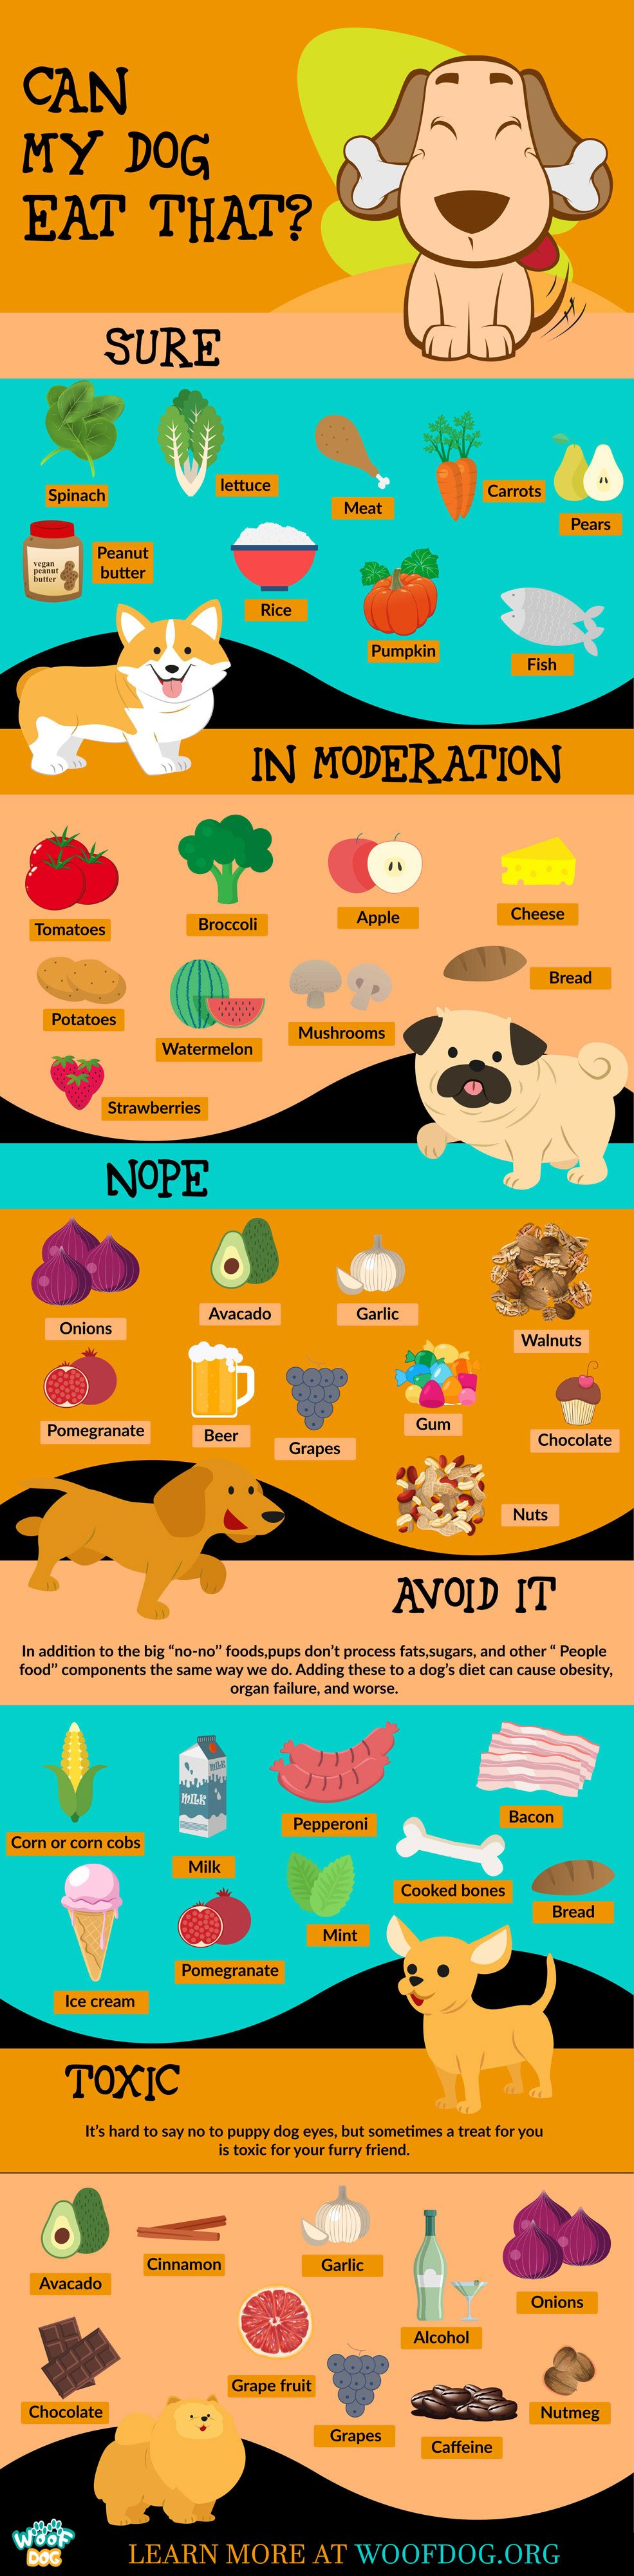 Can my dog eat that? Human foods your dog can eat and 11